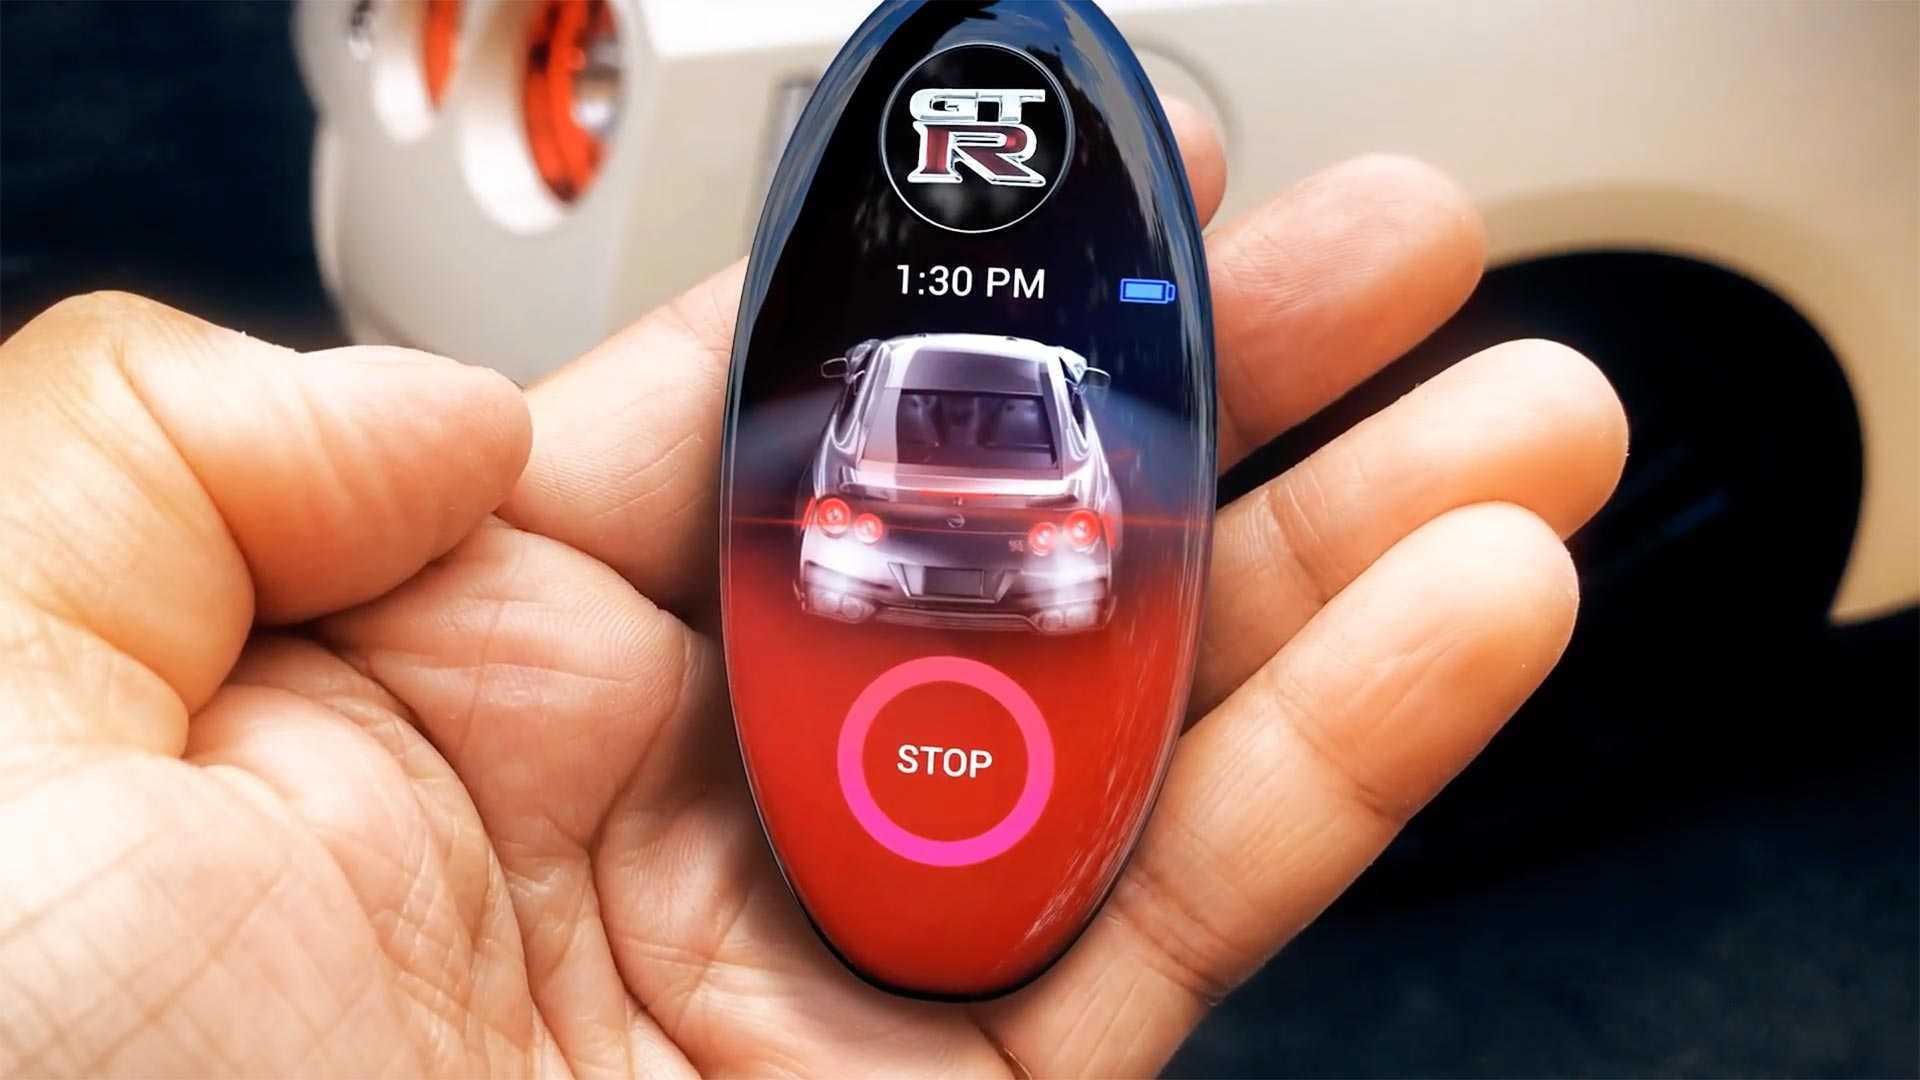 Study Finds Most Keyless Cars Vulnerable To Hacks